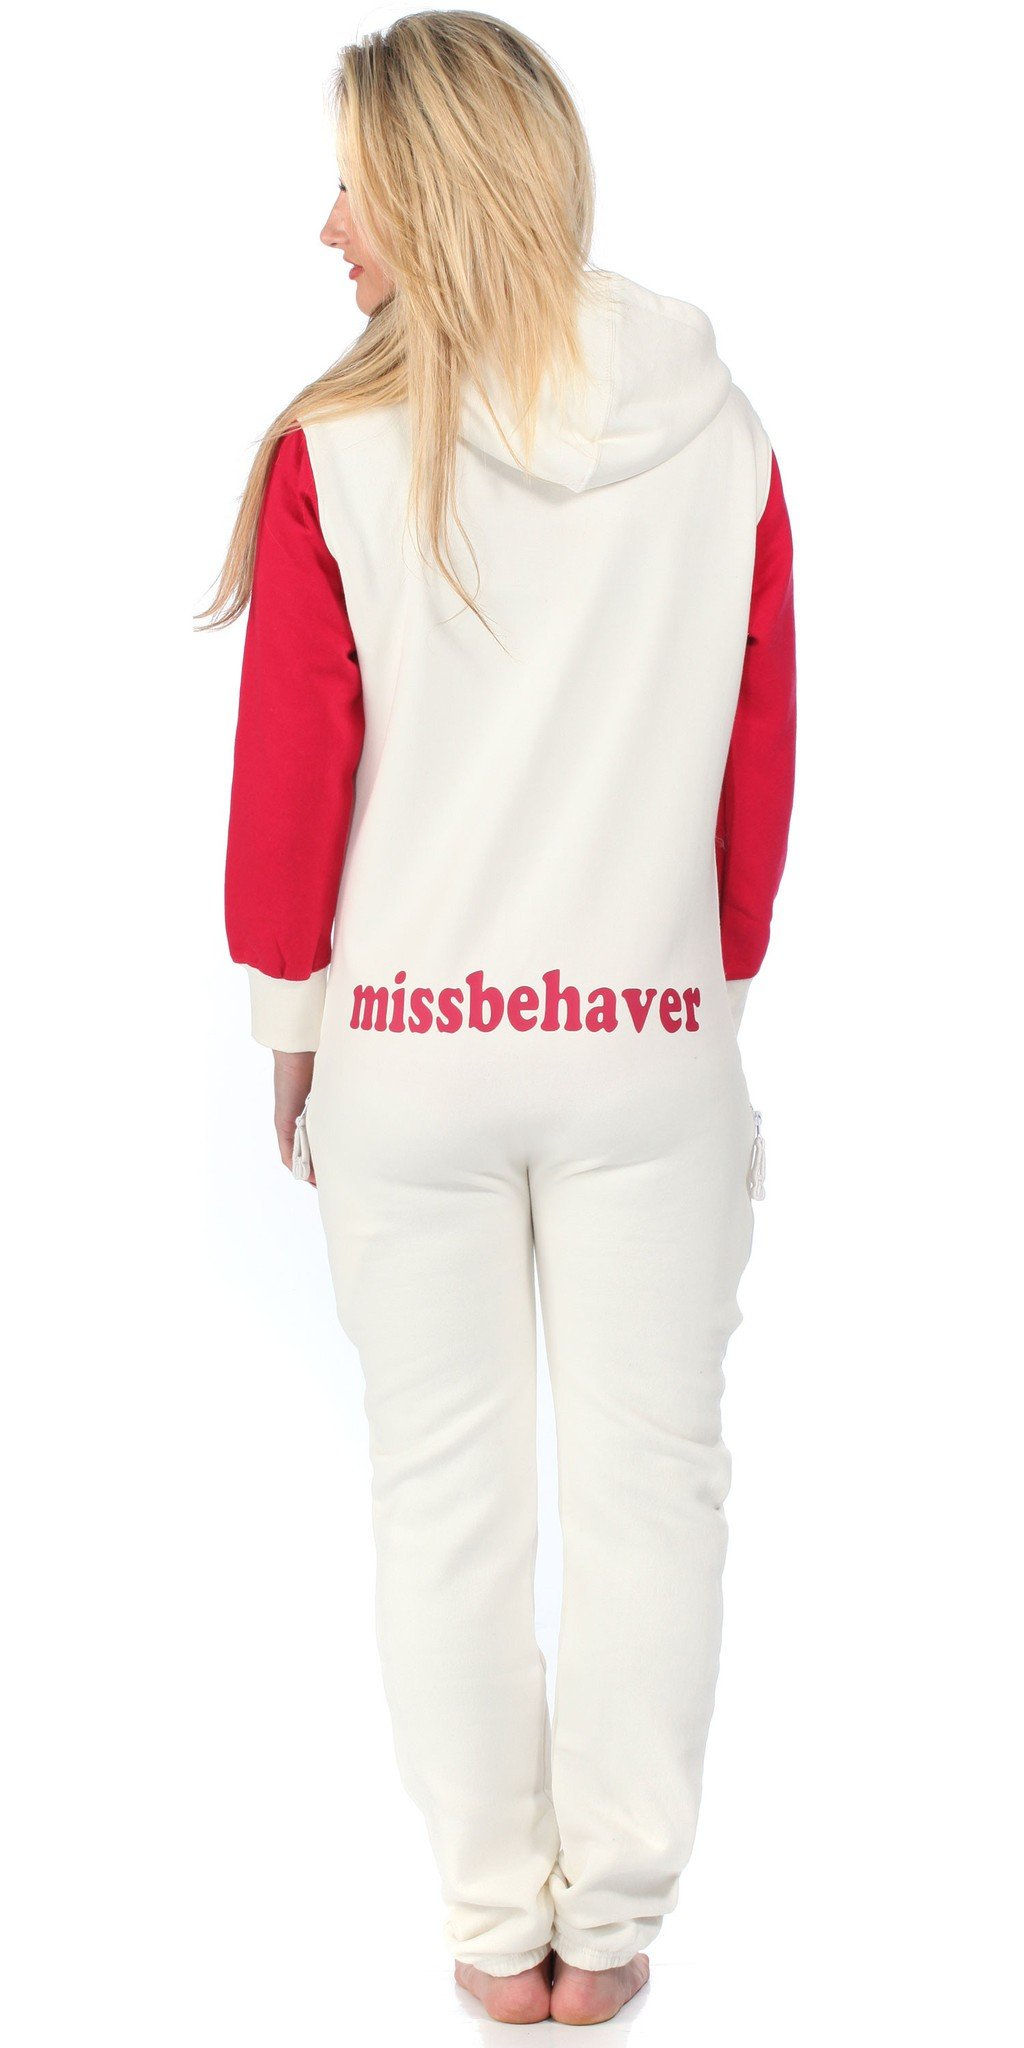 Missbehaver Original White & Pink Snug Hooded Onesie